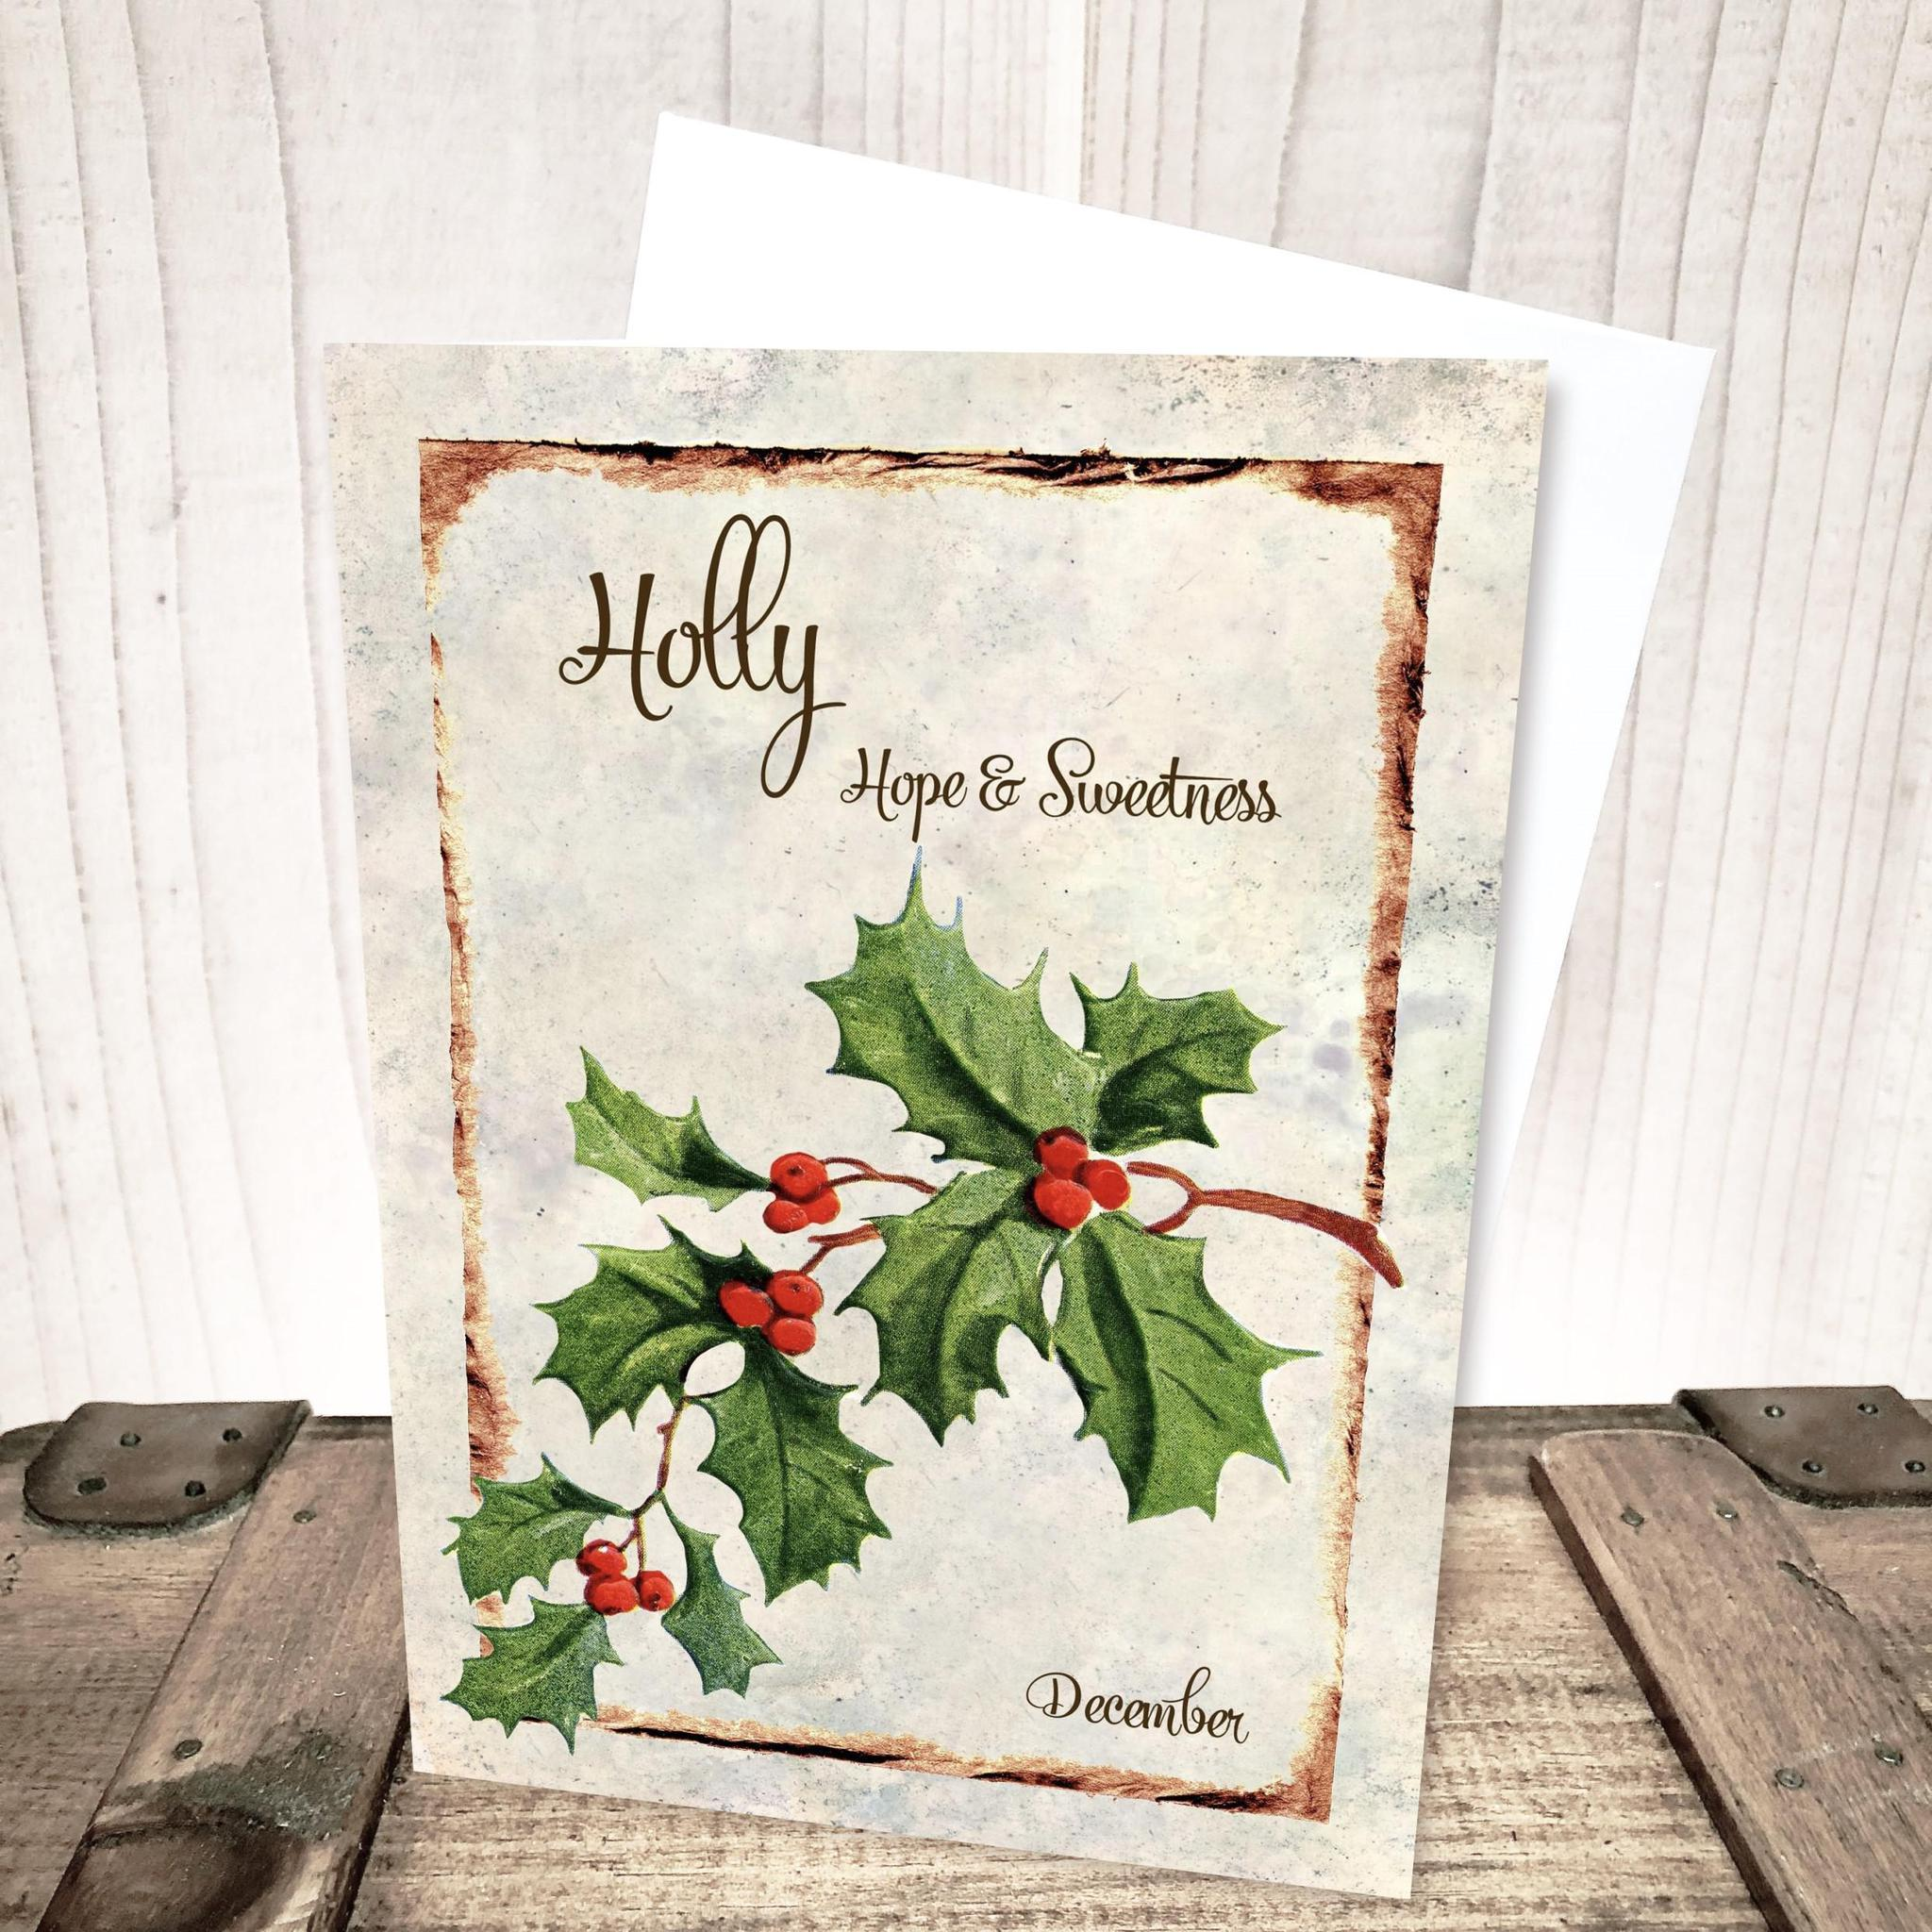 December Holly Flower Card by Yesterday's Best